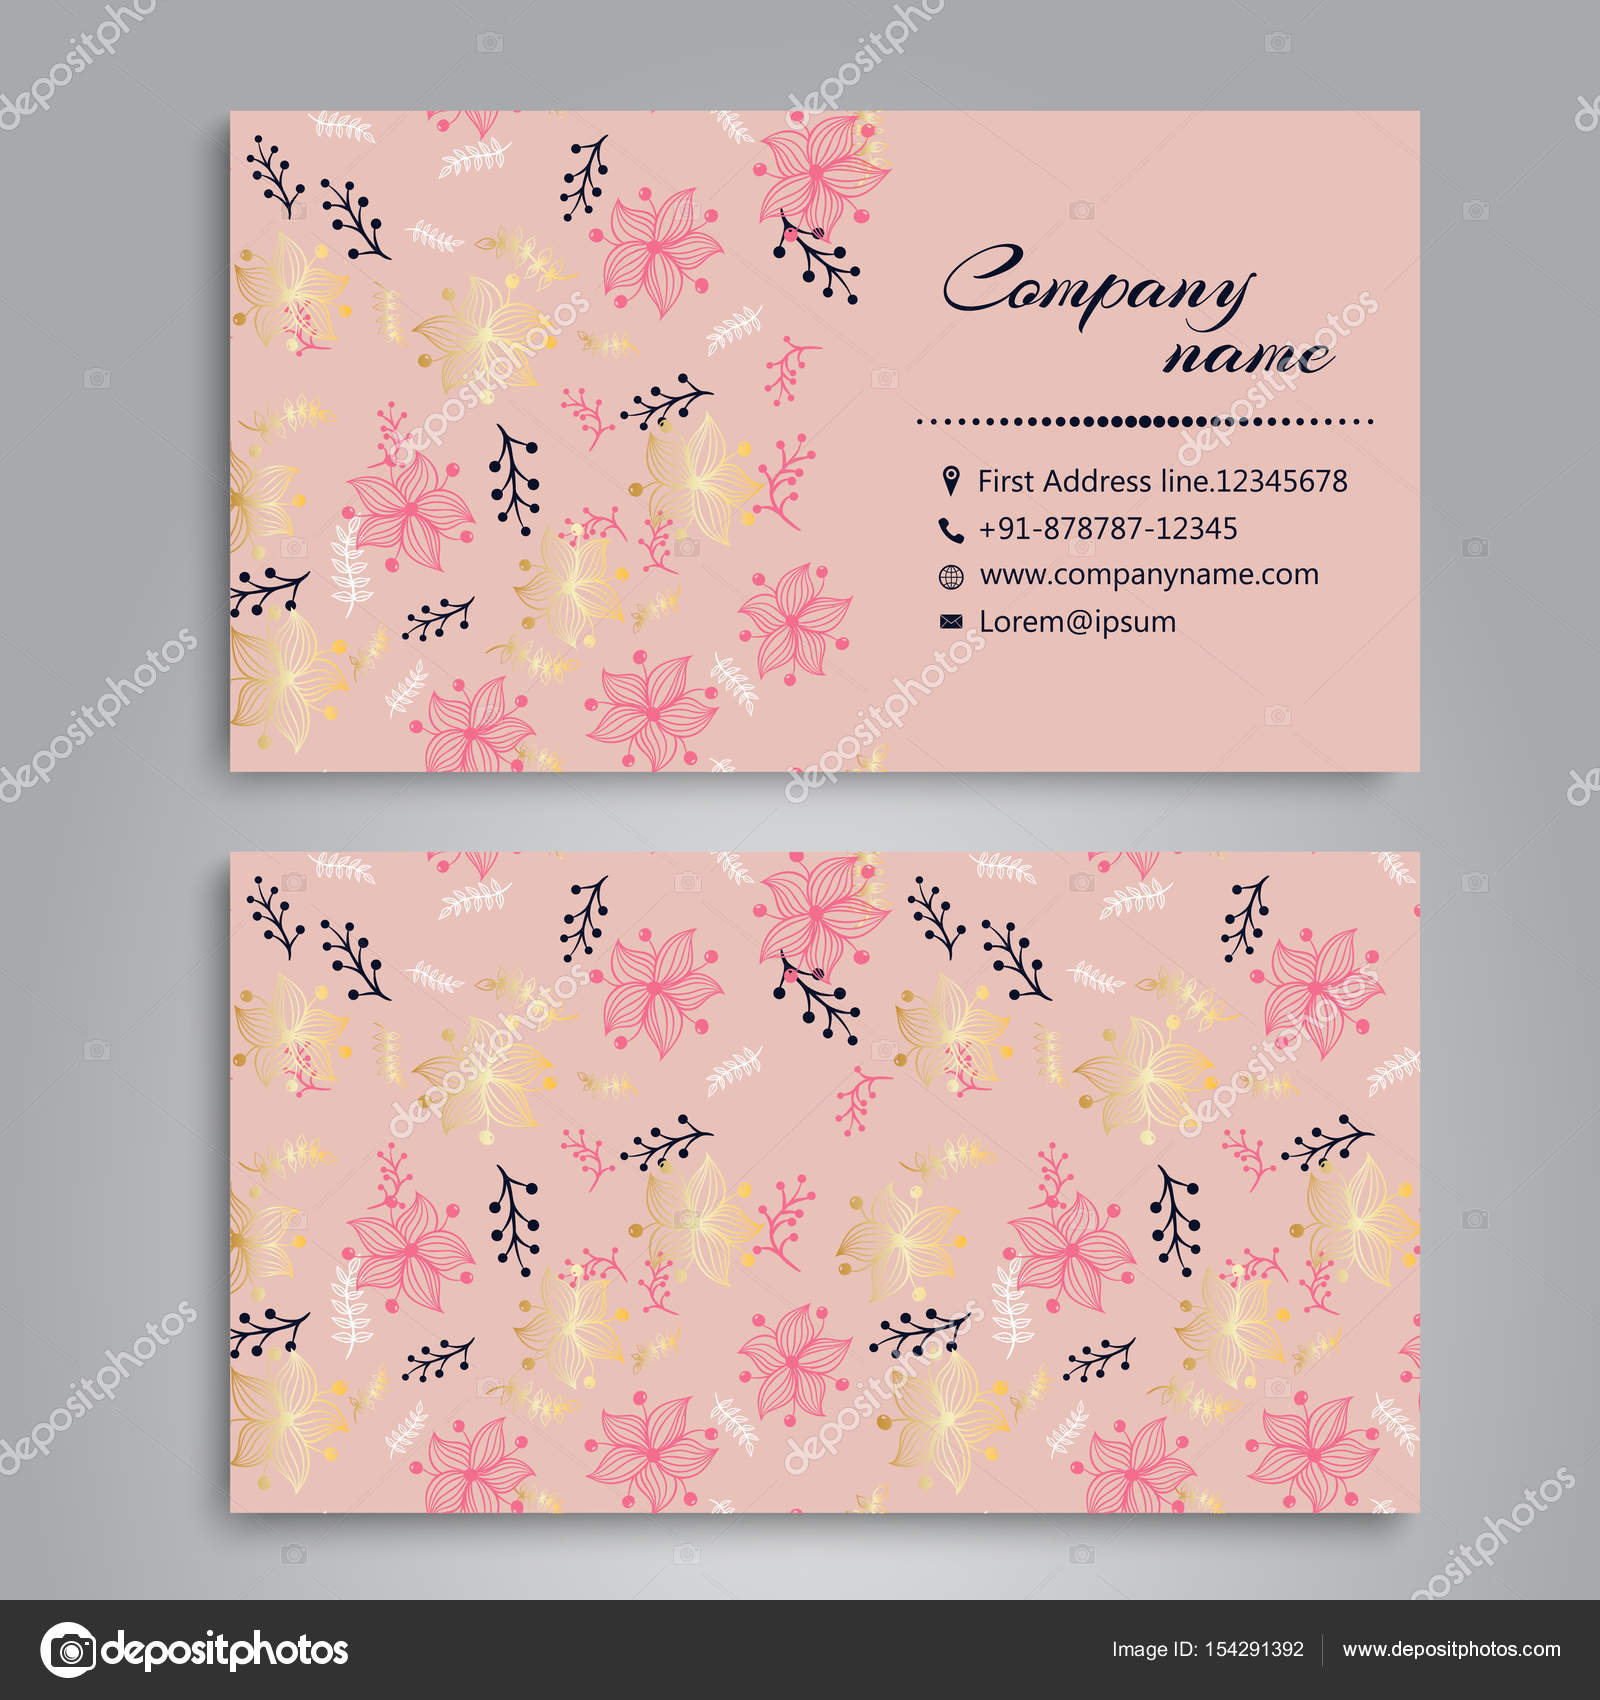 Floral business card template stock vector doodleflower 154291392 floral business card template stock vector cheaphphosting Gallery